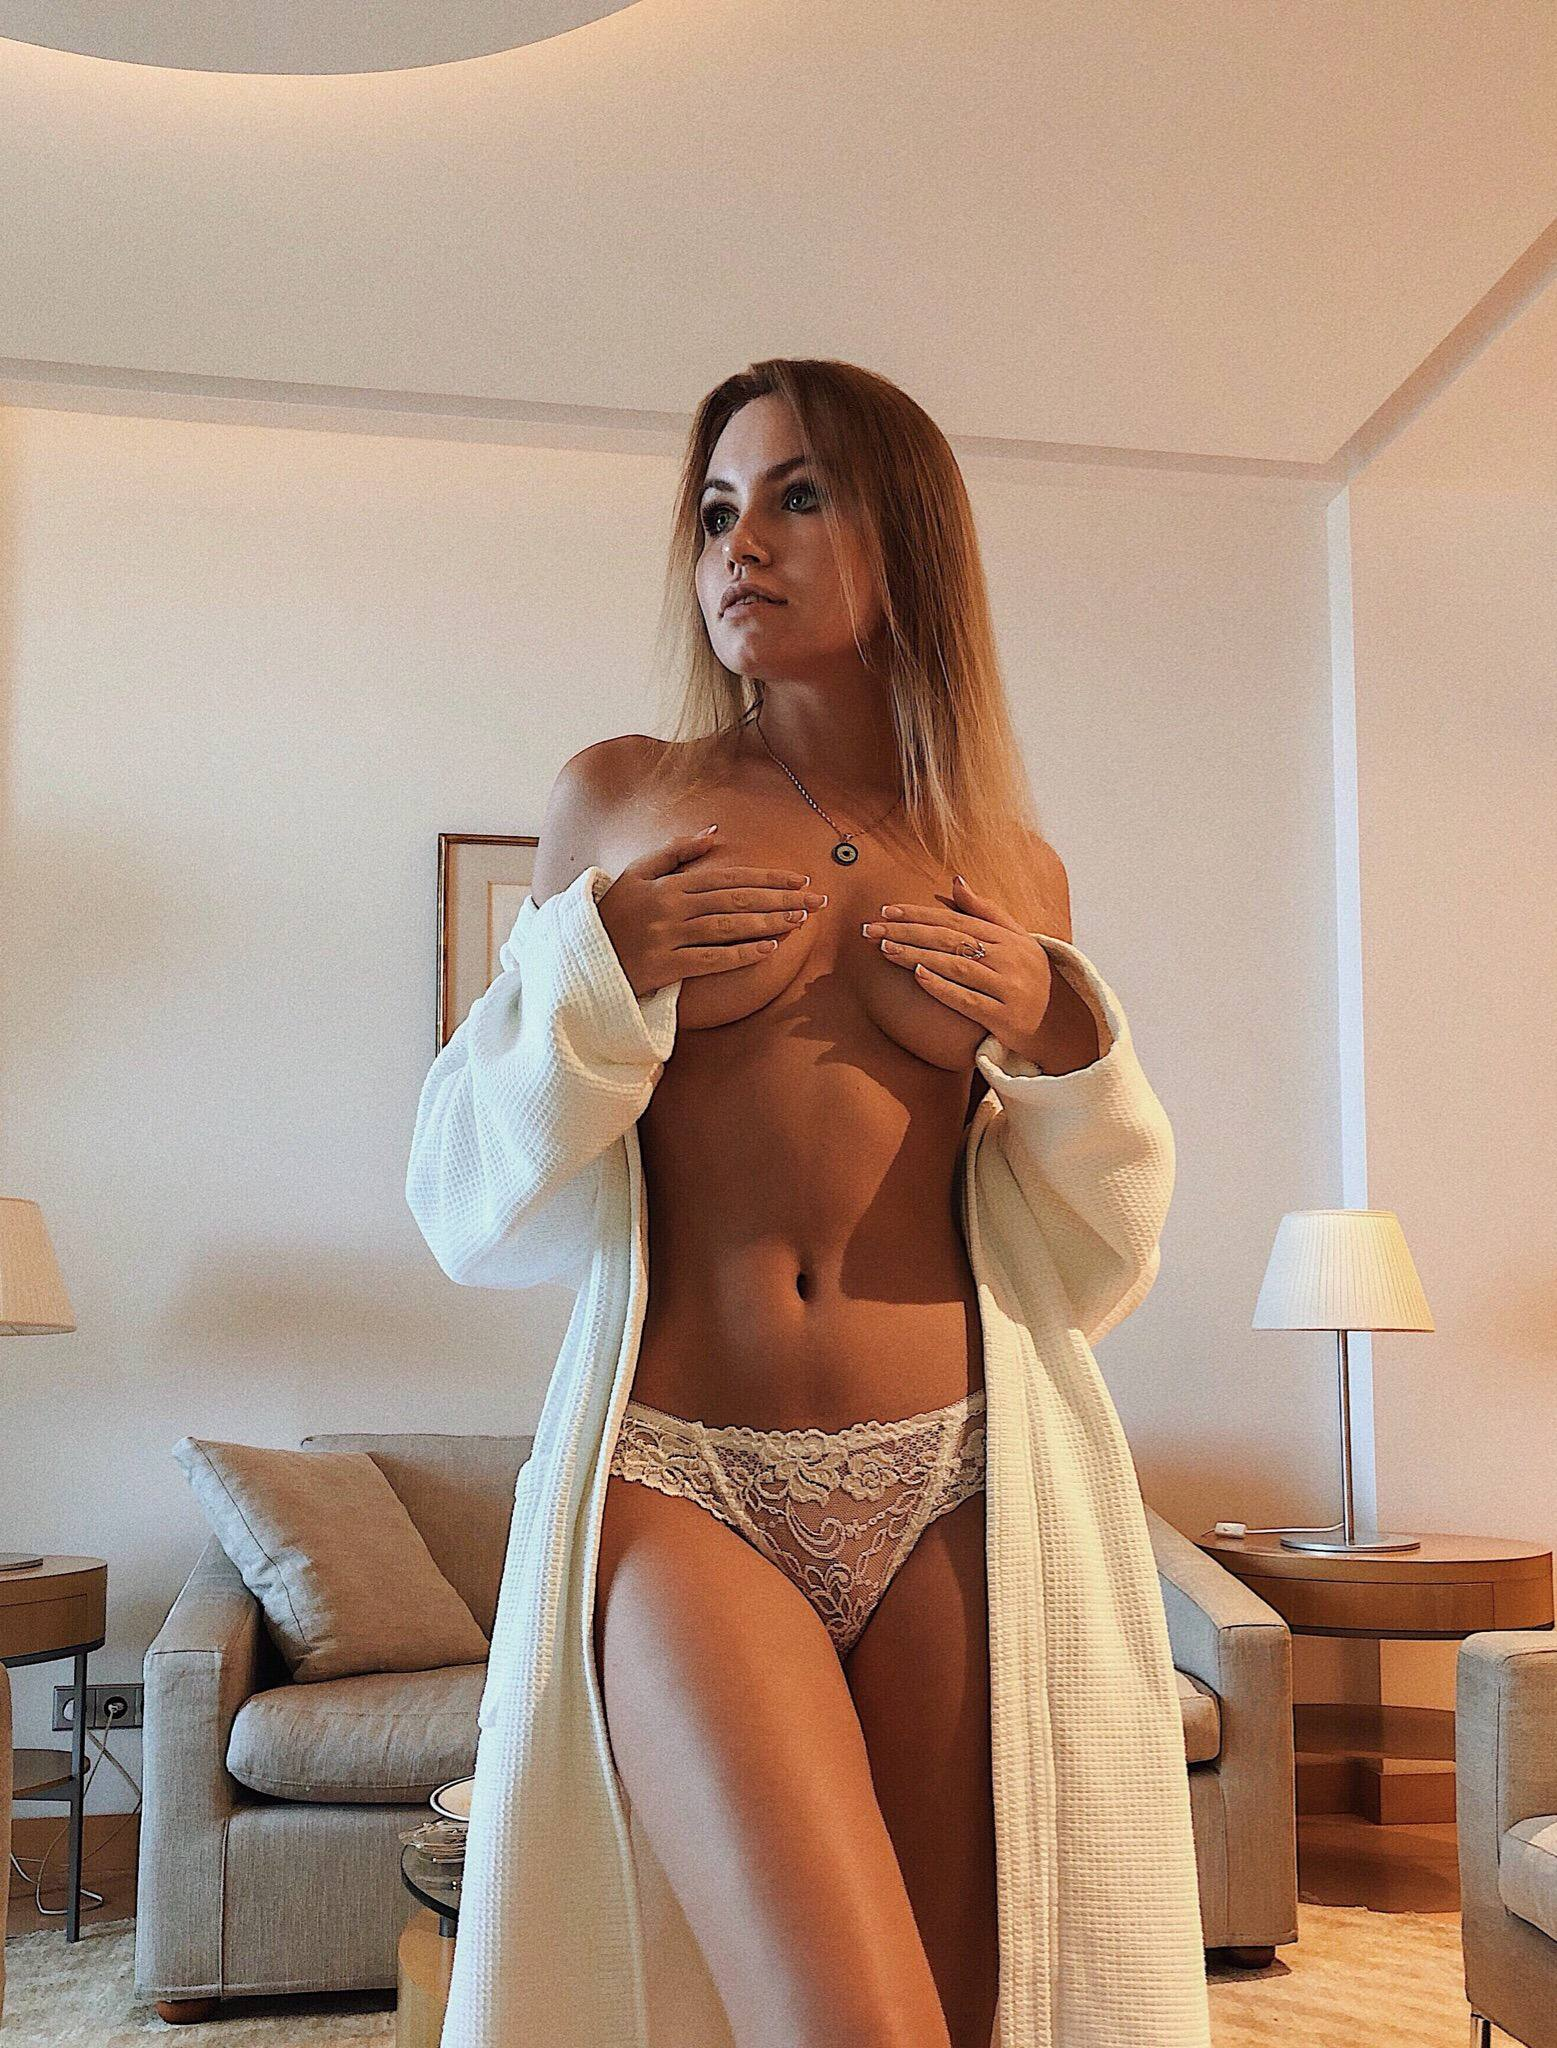 Nicole Ross – Hot Body In Sexy Lingerie Photoshoot 0003